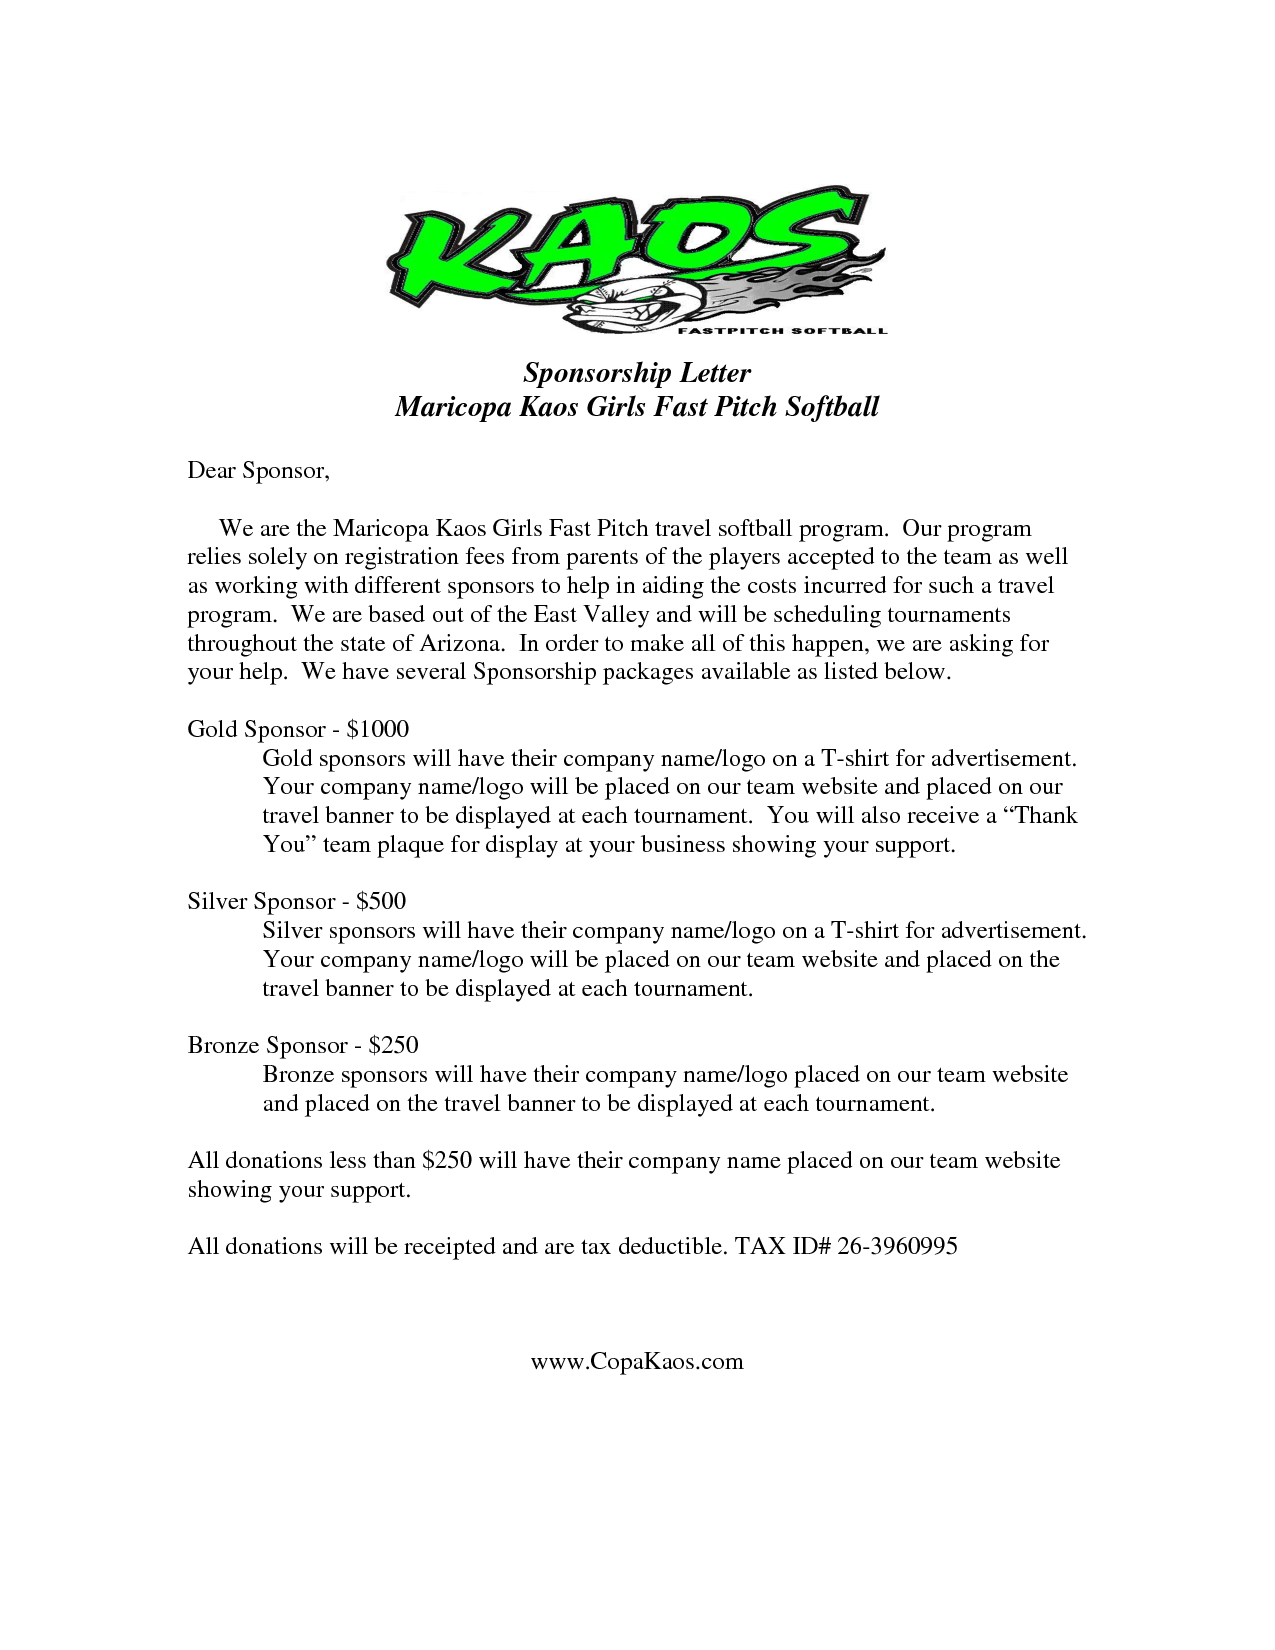 Letter to solicit Donations Template - Image Result for Sample Sponsor Request Letter Donation